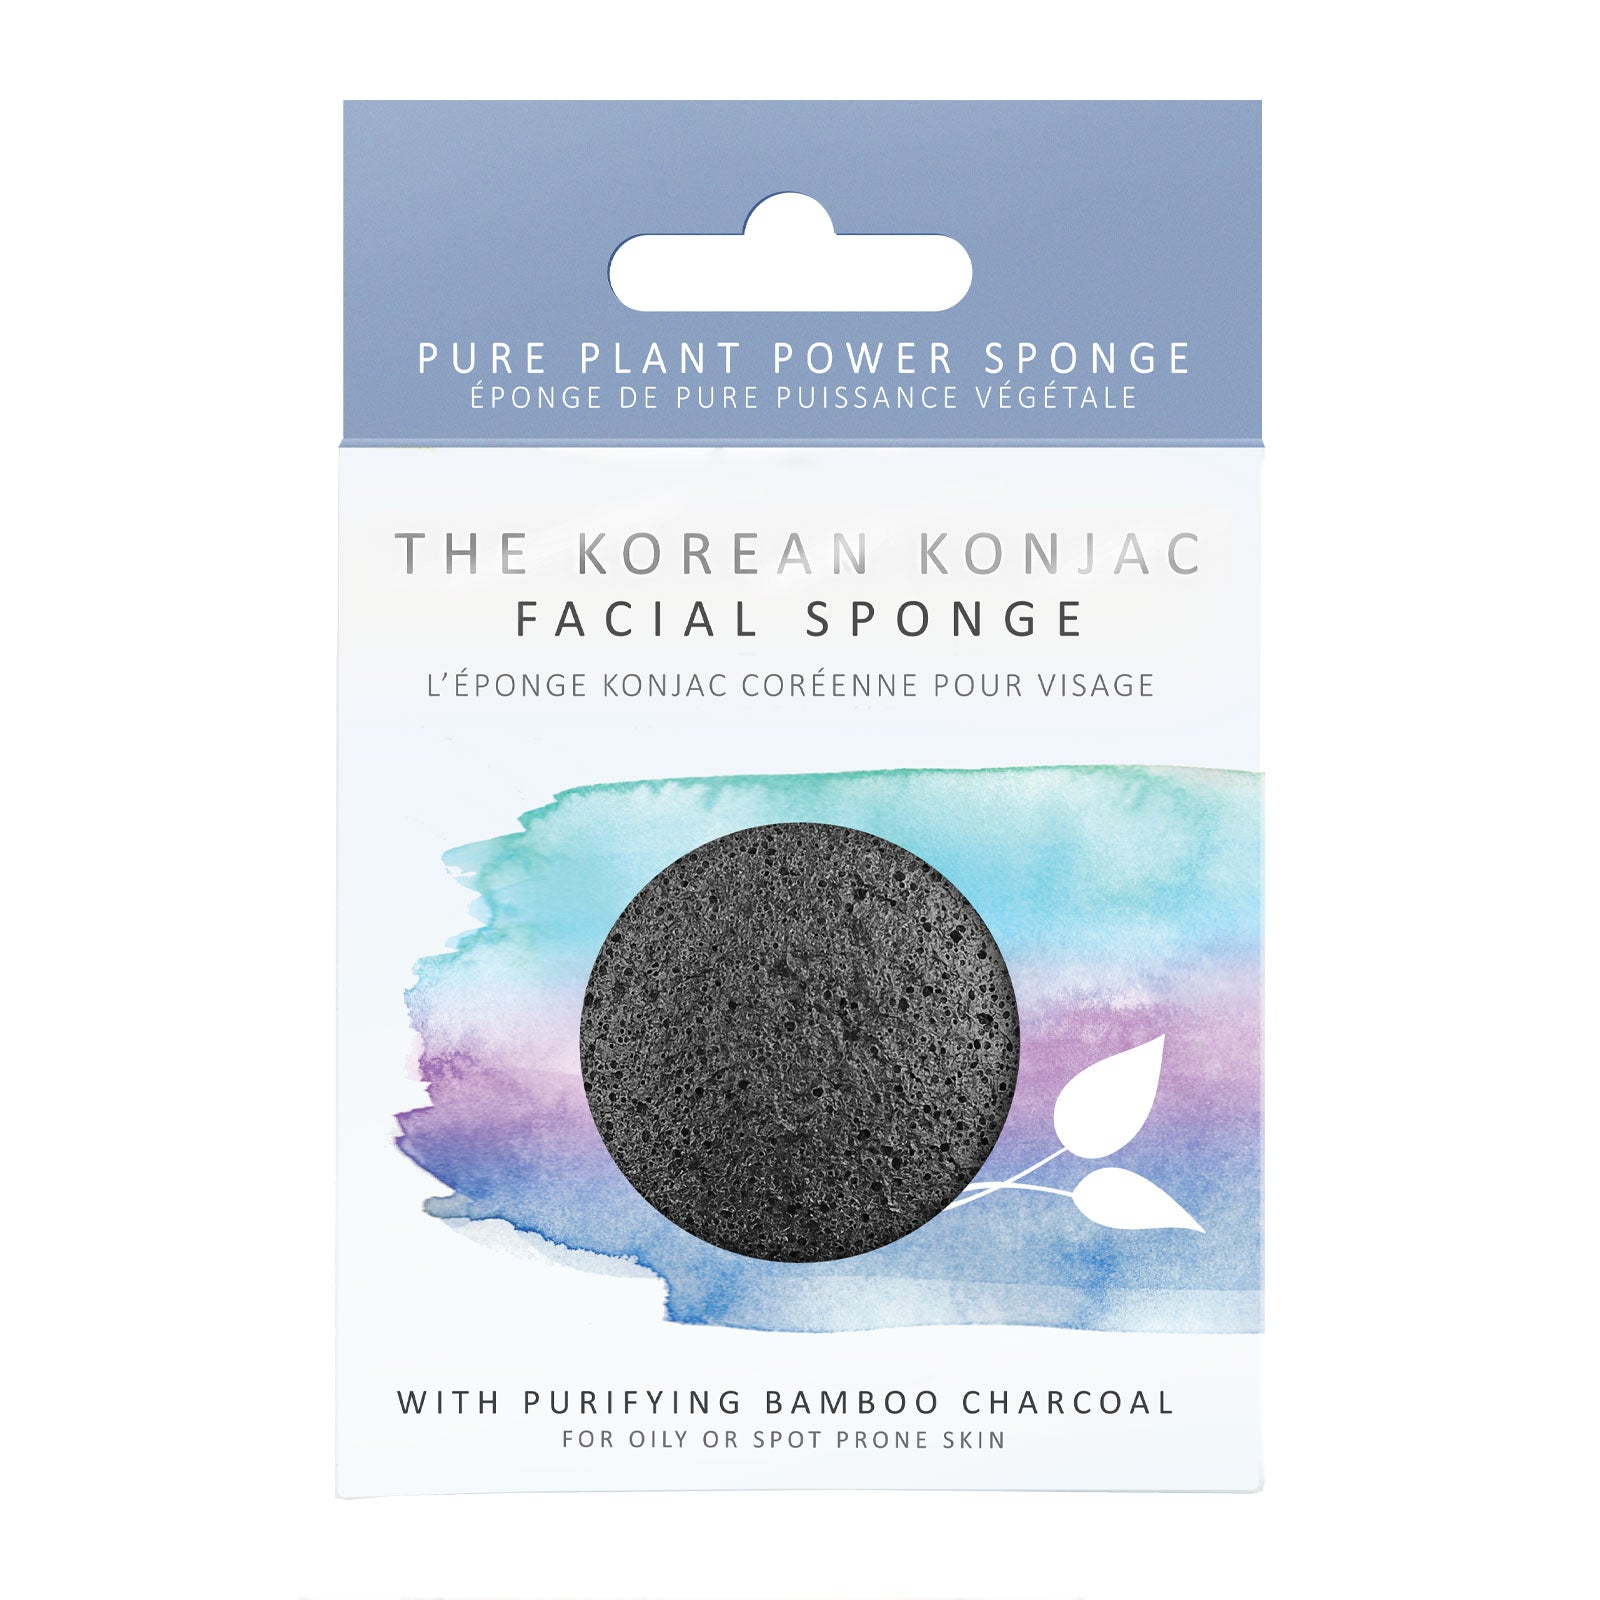 The Konjac Sponge Company 100% Natural Vegetable Fibre Sponge with Bamboo Charcoal